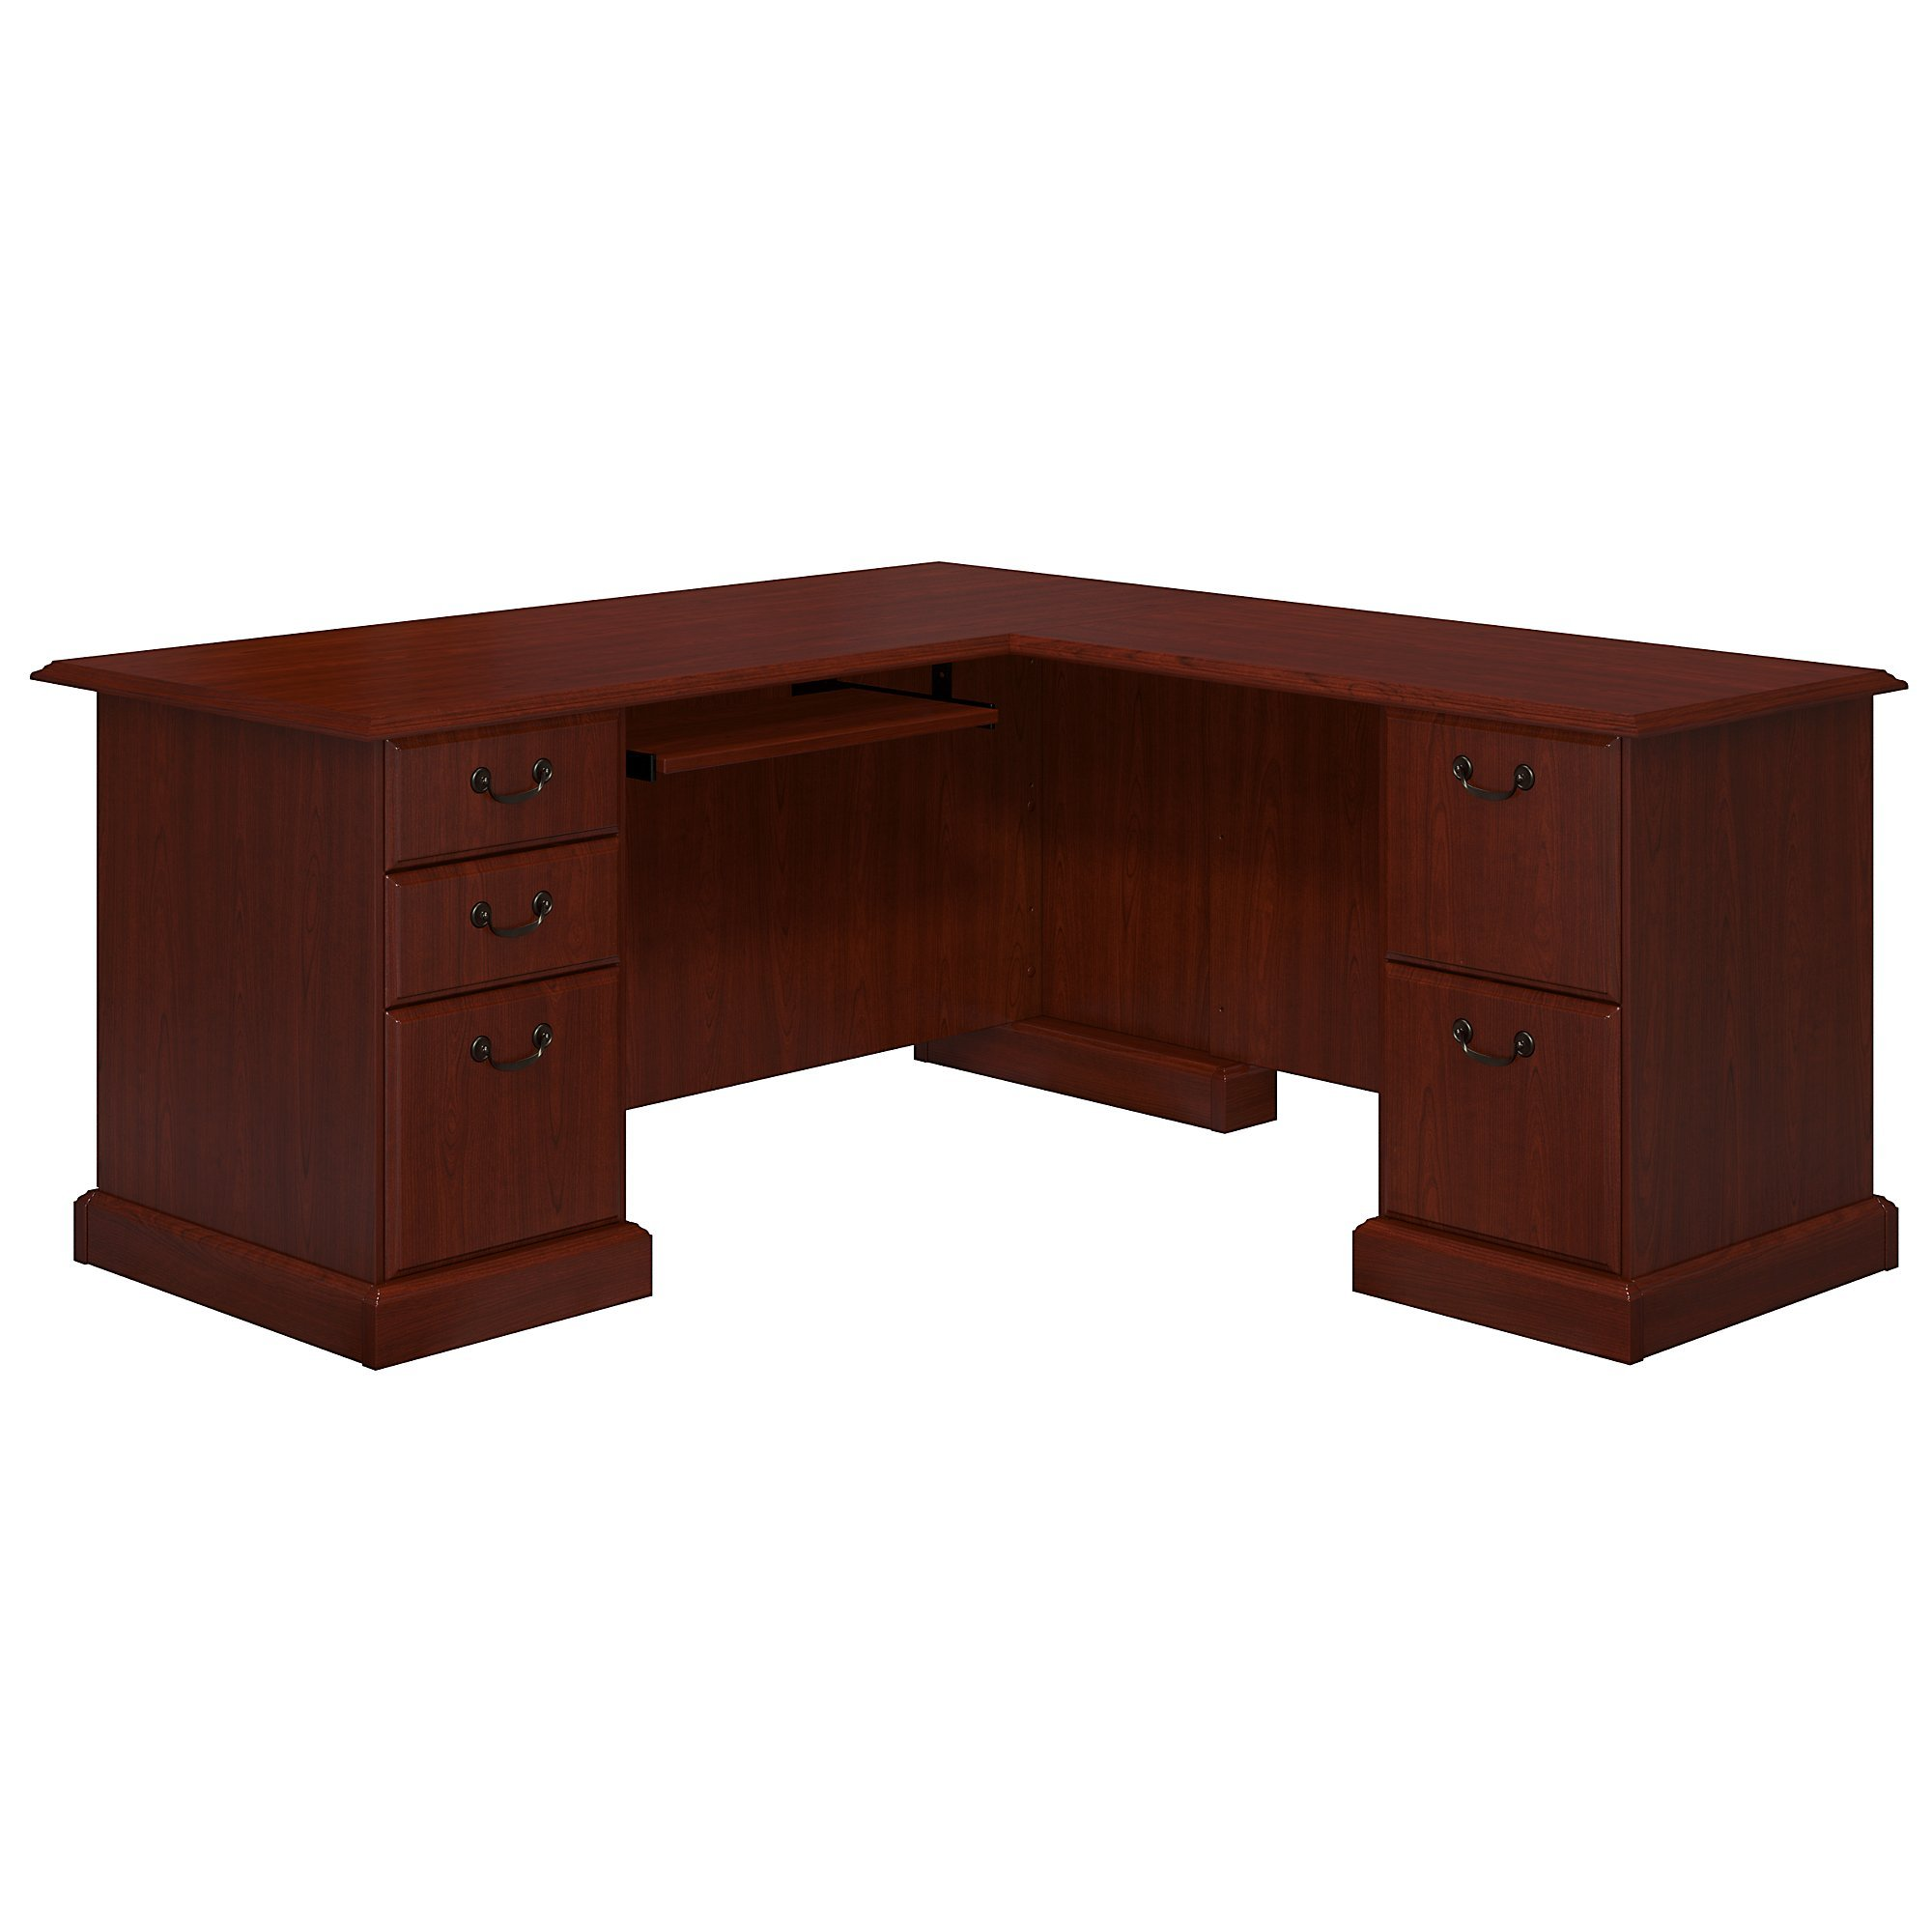 kathy ireland Office by Bush Furniture Bennington L Shaped Desk with Drawers in Harvest Cherry